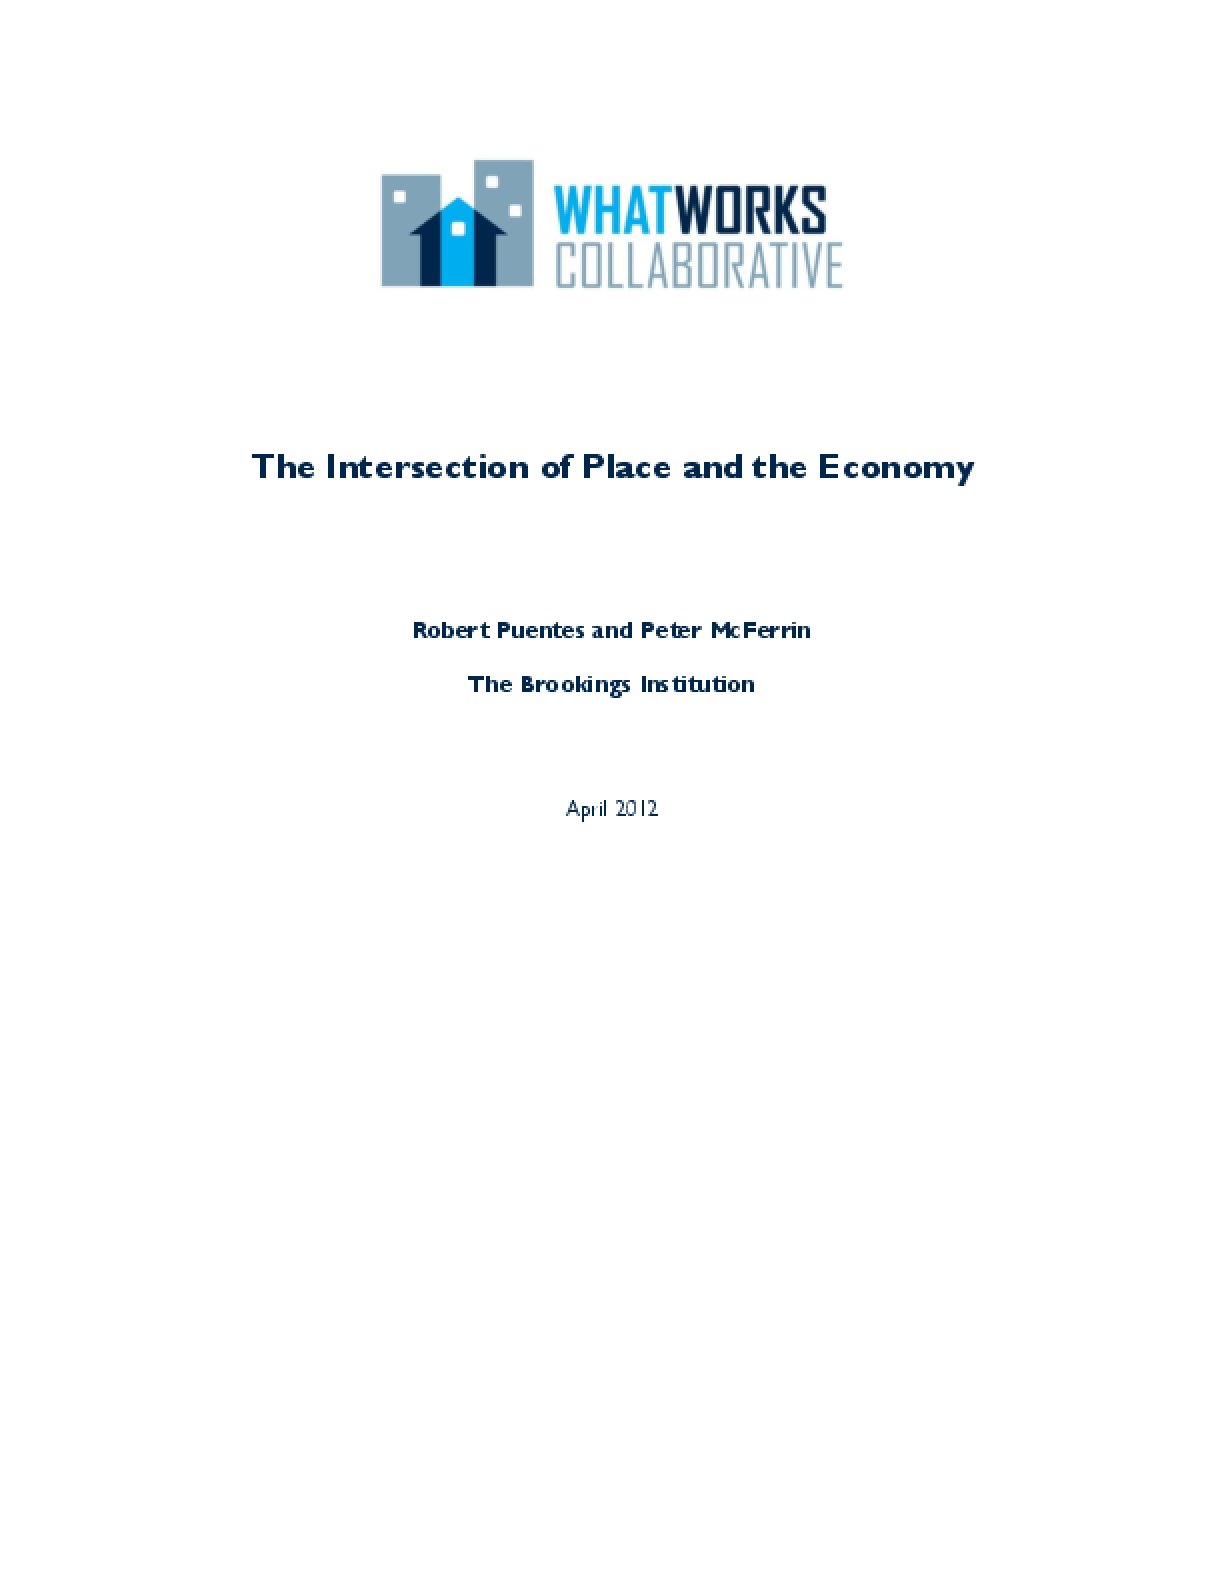 The Intersection of Place and the Economy